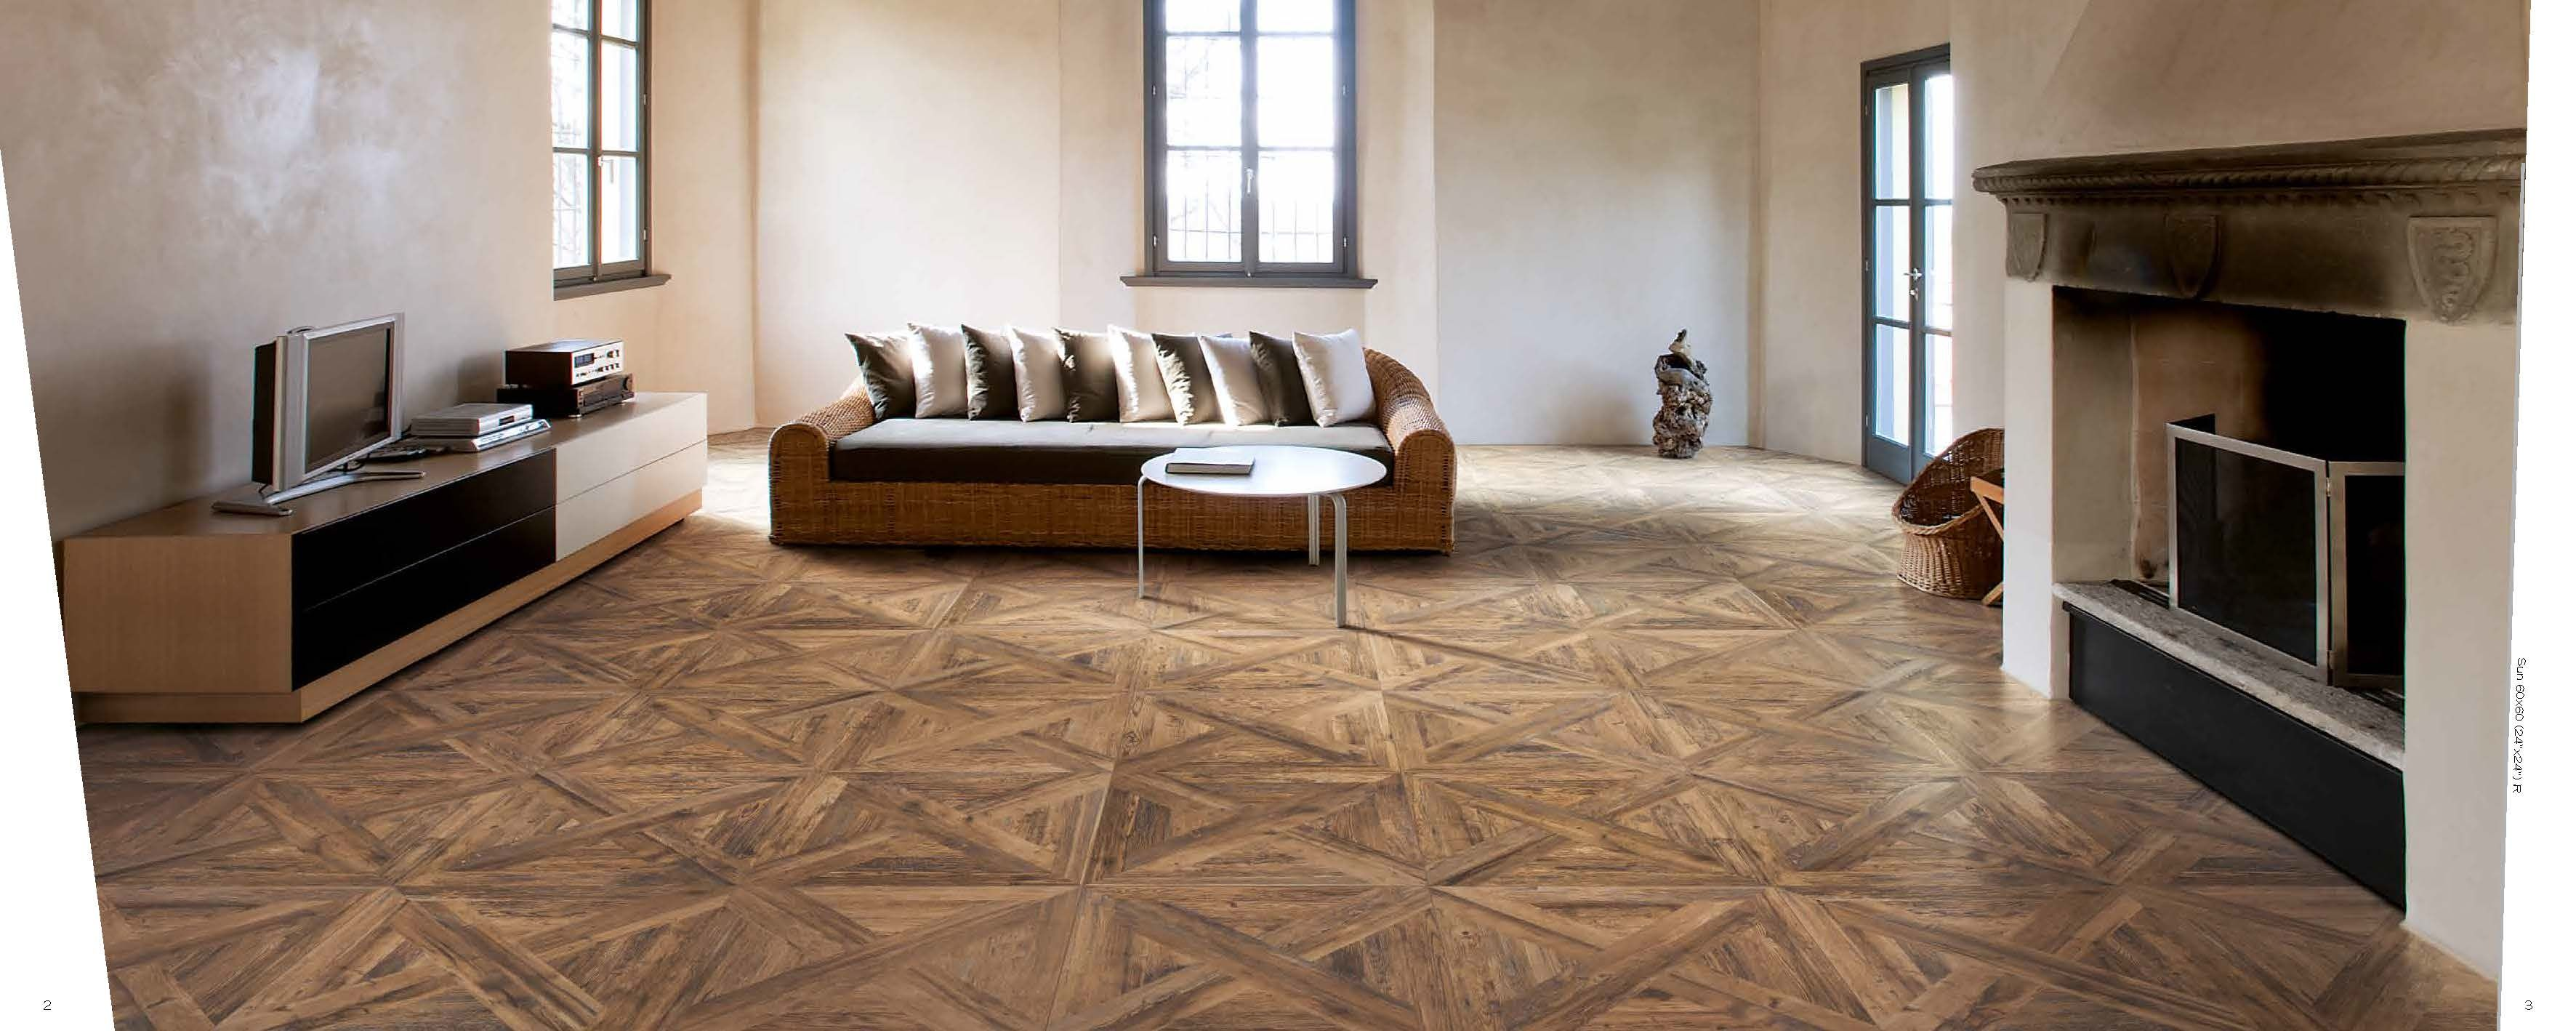 Great Latest Flooring Trend Wood Tile Imperial Wholesale